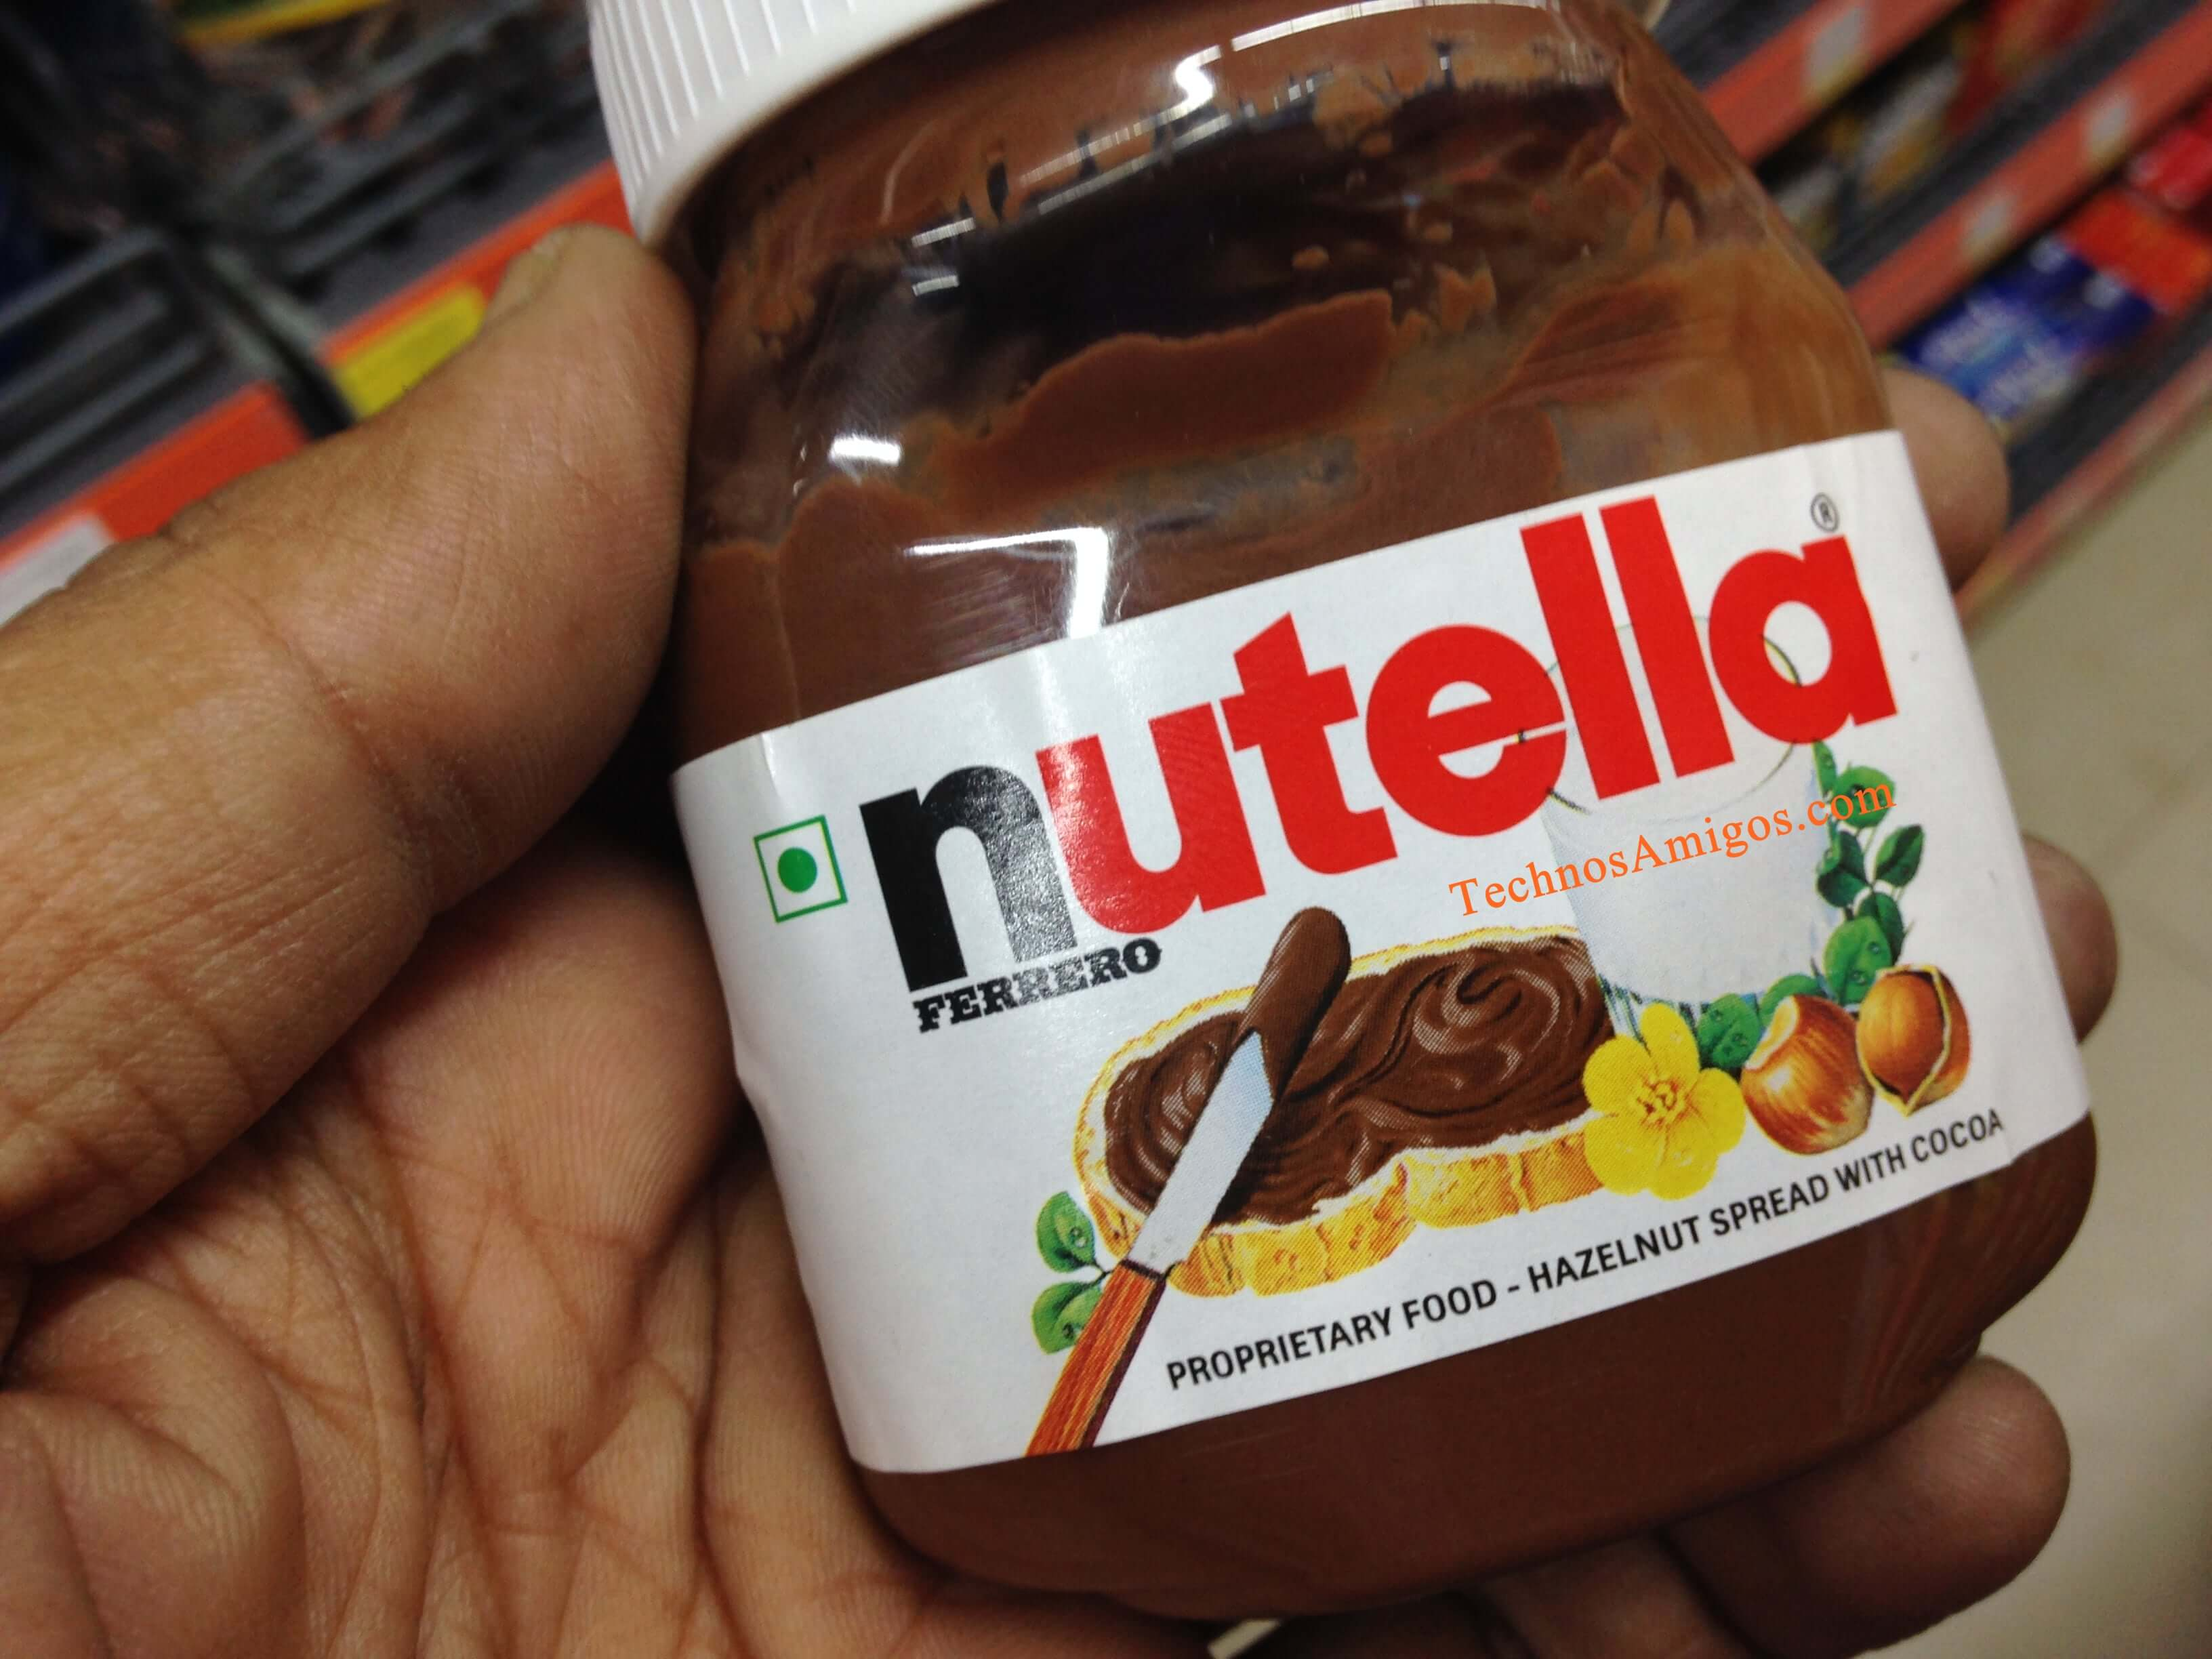 Android Nutella - Android 7